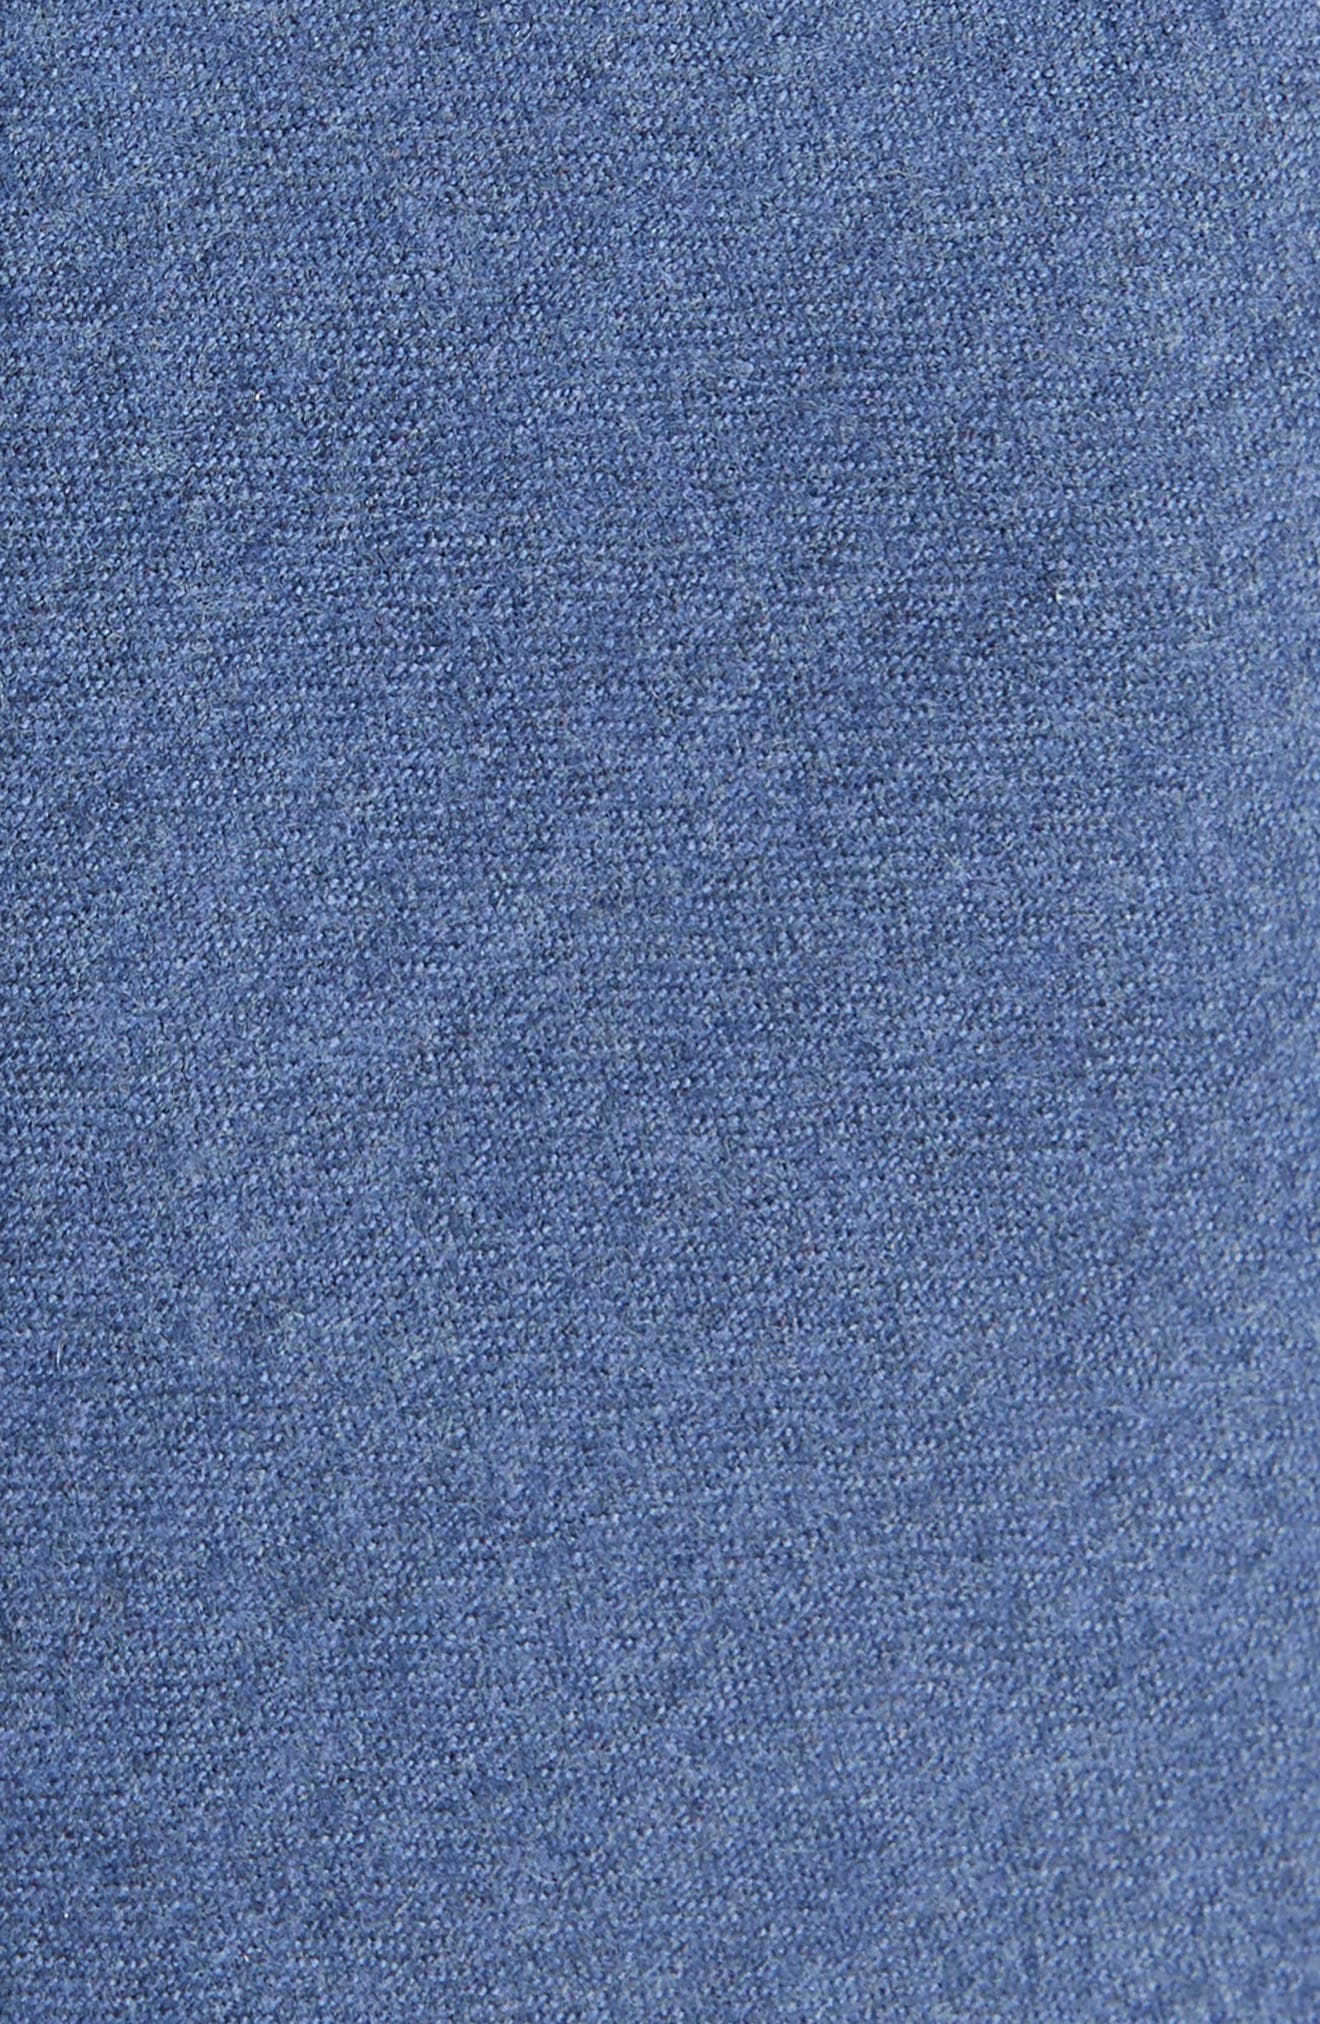 Togna Solid Wool Tie,                             Alternate thumbnail 2, color,                             BLUE